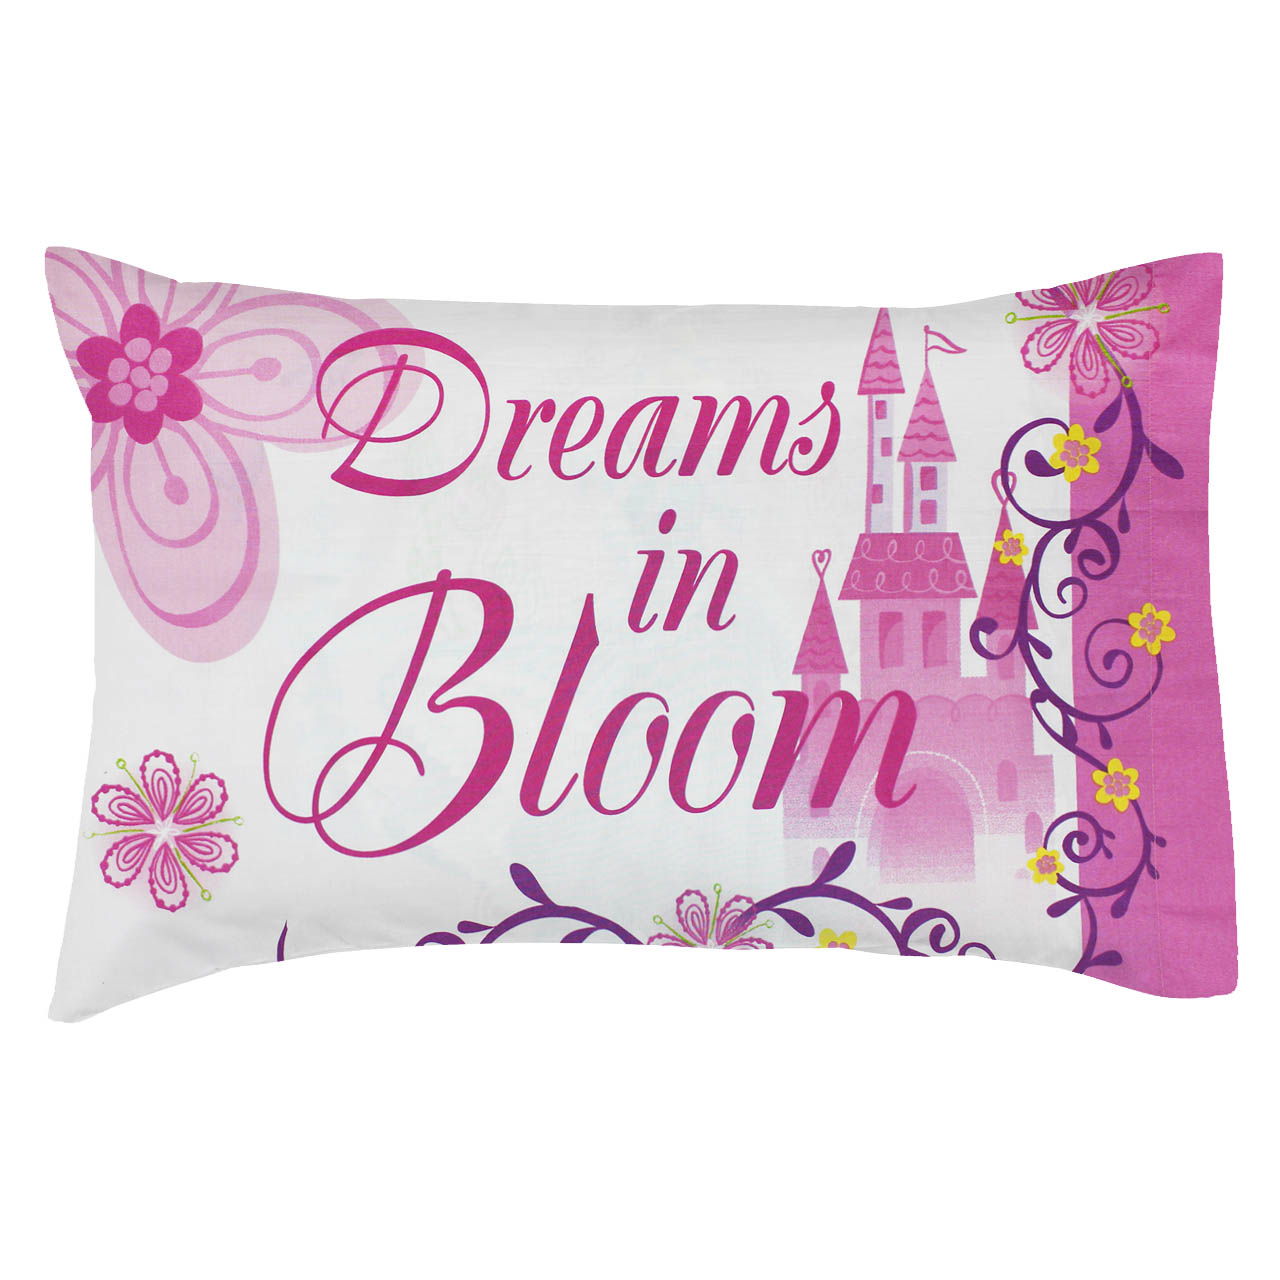 2pc Princess Castle Pillowcases Set